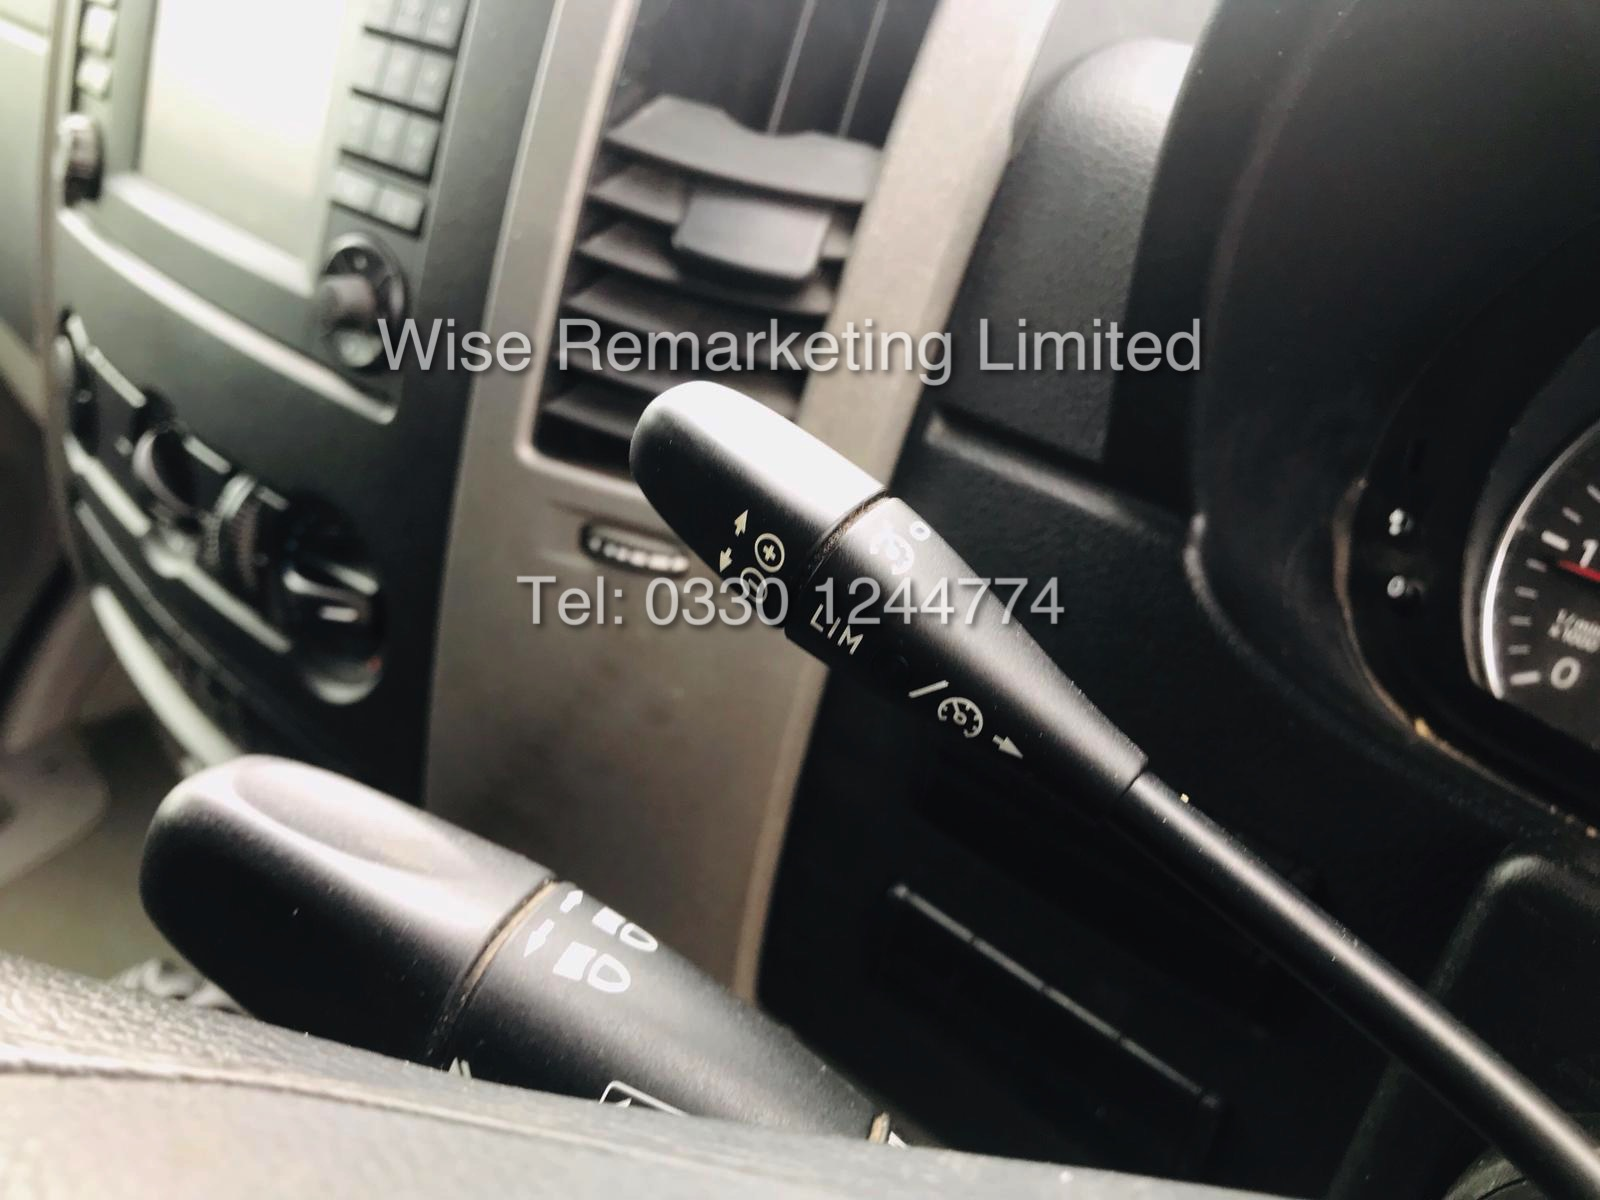 VOLKSWAGEN CRAFTER CR35 2.0 TDI LONG WHEEL BASE 2016 MODEL - Image 7 of 14